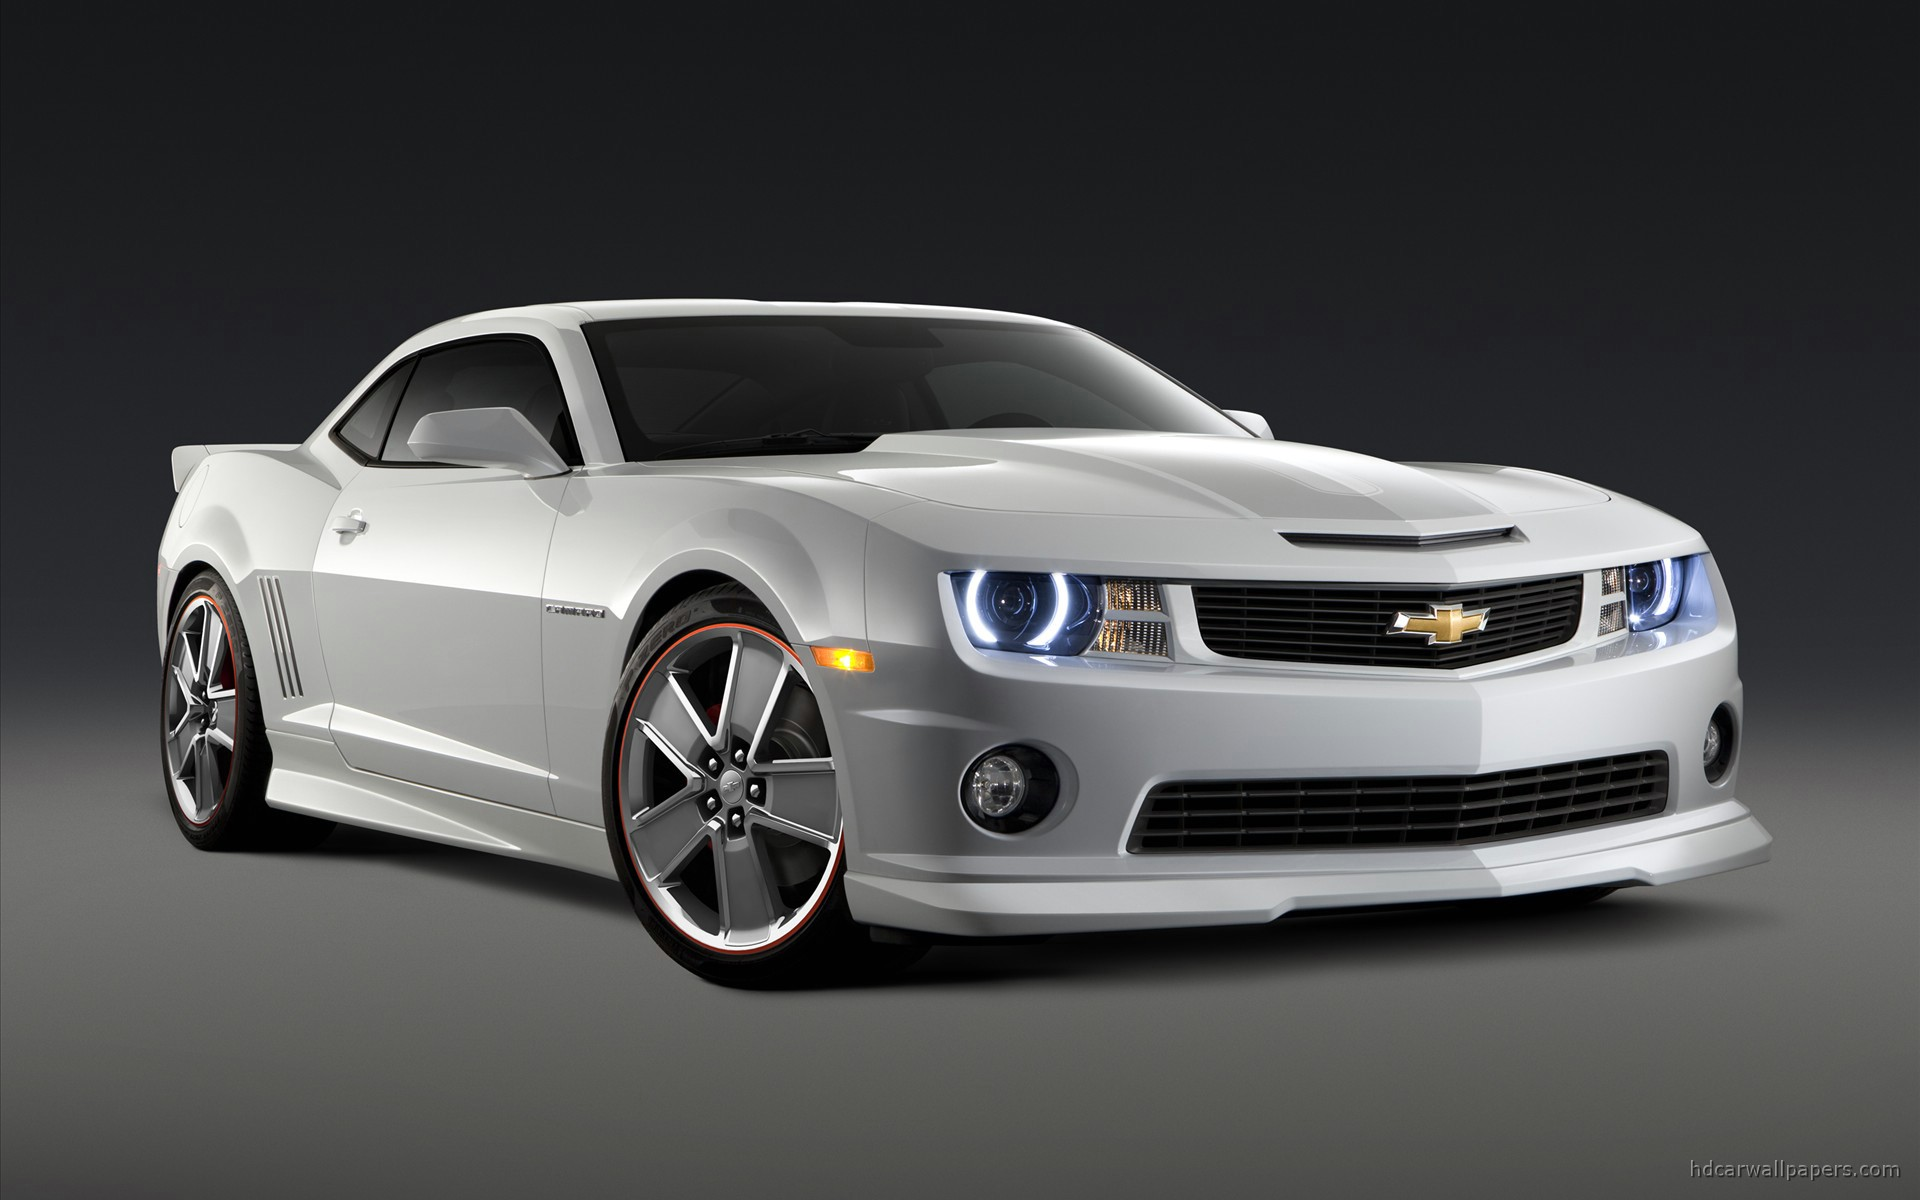 Chevrolet Camaro Chroma Wallpapers HD Wallpapers 1920x1200